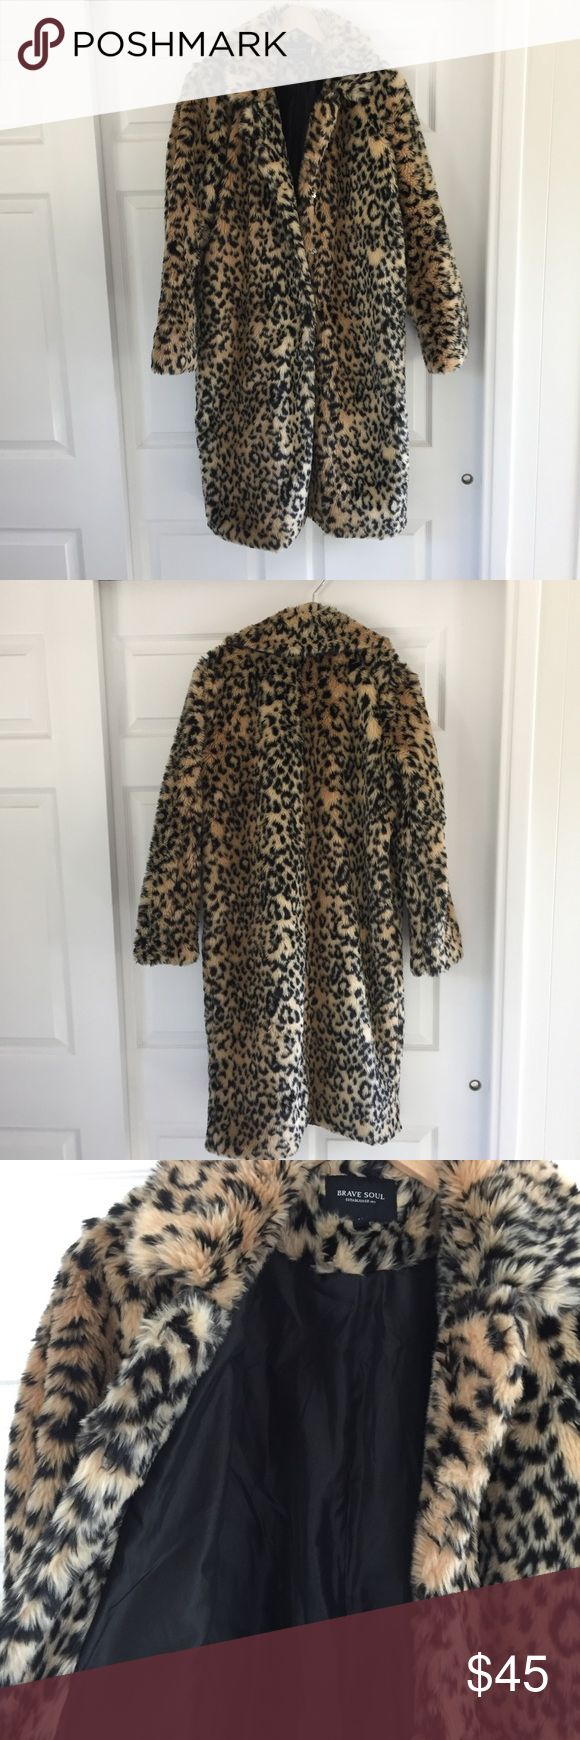 Leopard Faux Fur Coat Purchased from Asos but brand is Brave Soul. Long faux fur coat with pockets and snap closures up the front. Excellent condition, only worn once. Length 39 inches Asos Jackets & Coats